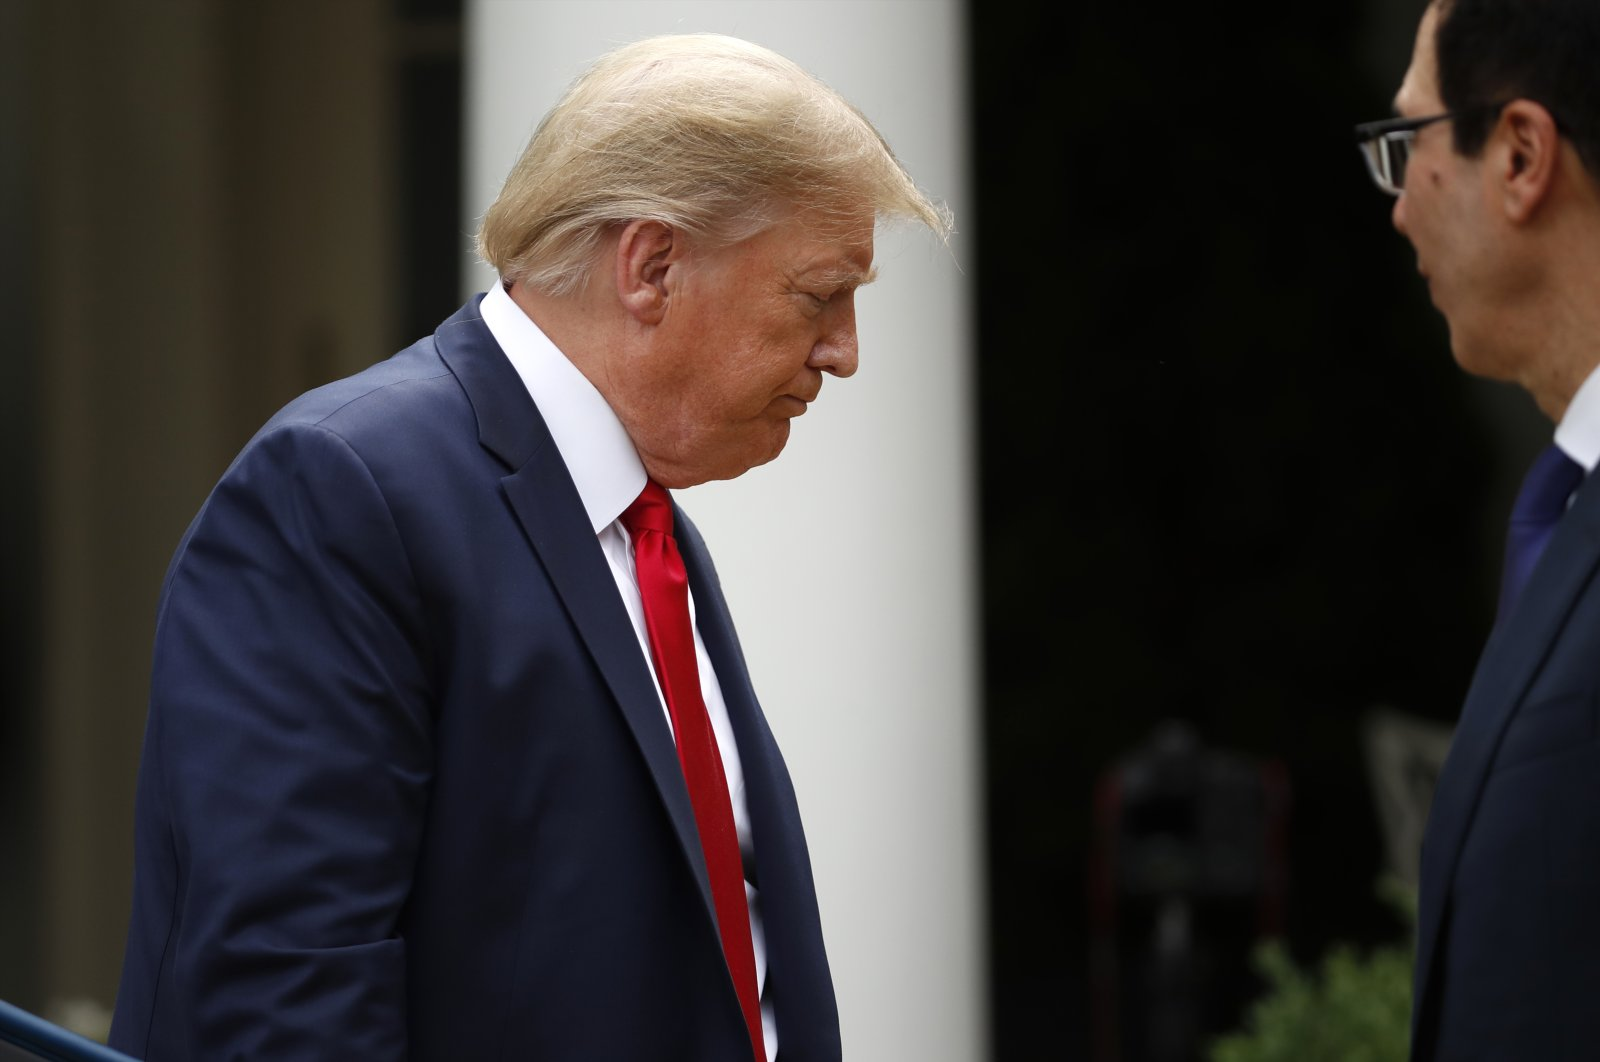 President Donald Trump leaves after speaking in the Rose Garden of the White House in Washington, D.C.,  May 29, 2020. (AP Photo)